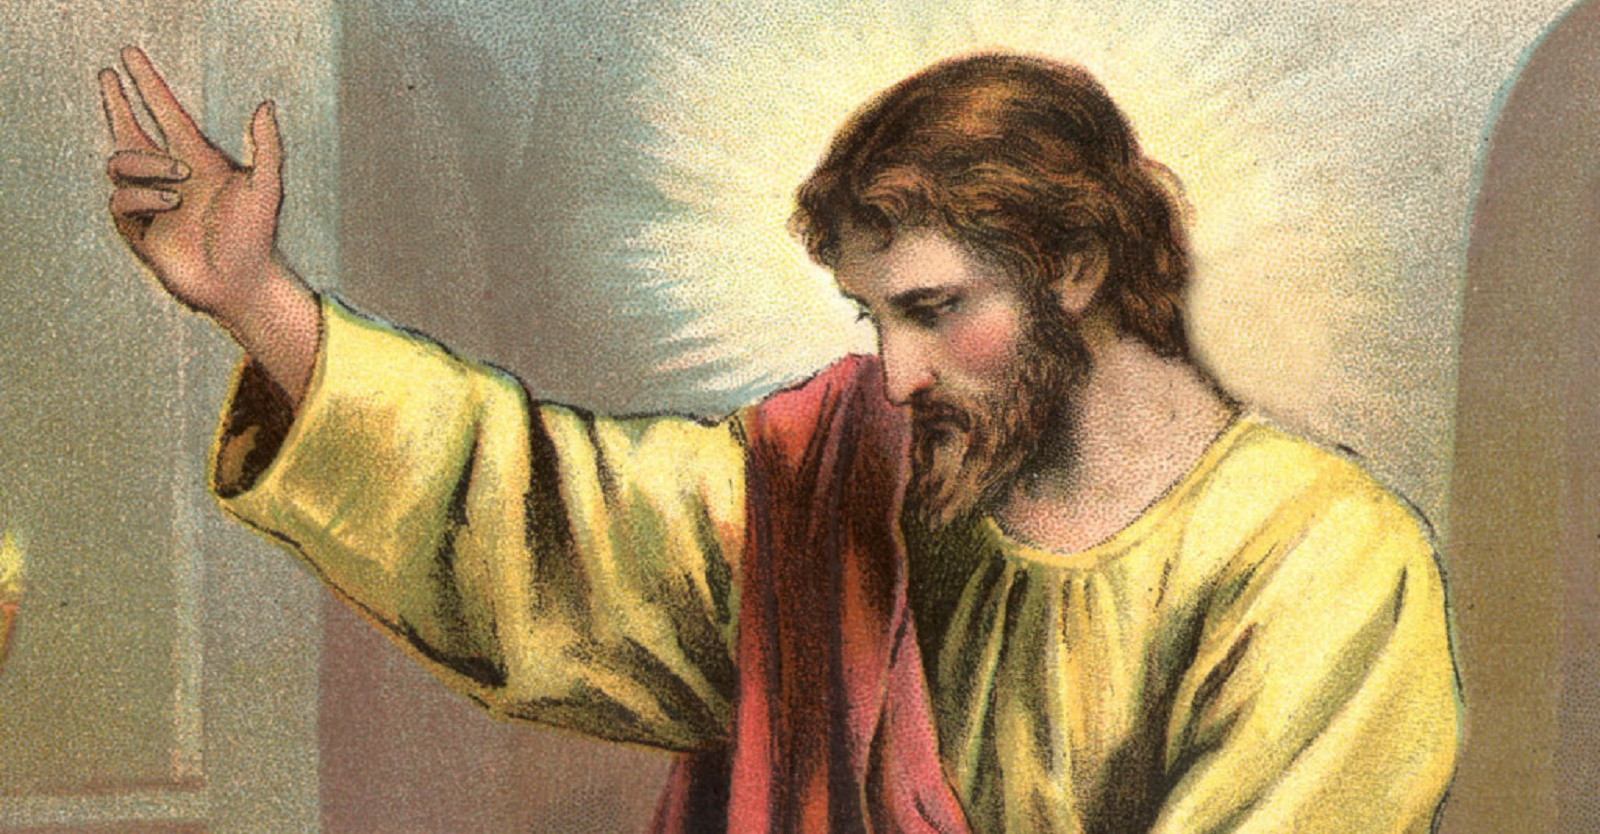 Anti-LGBT group: Jesus opposes gay marriage, just look in this bit of the Bible everyone already ignores